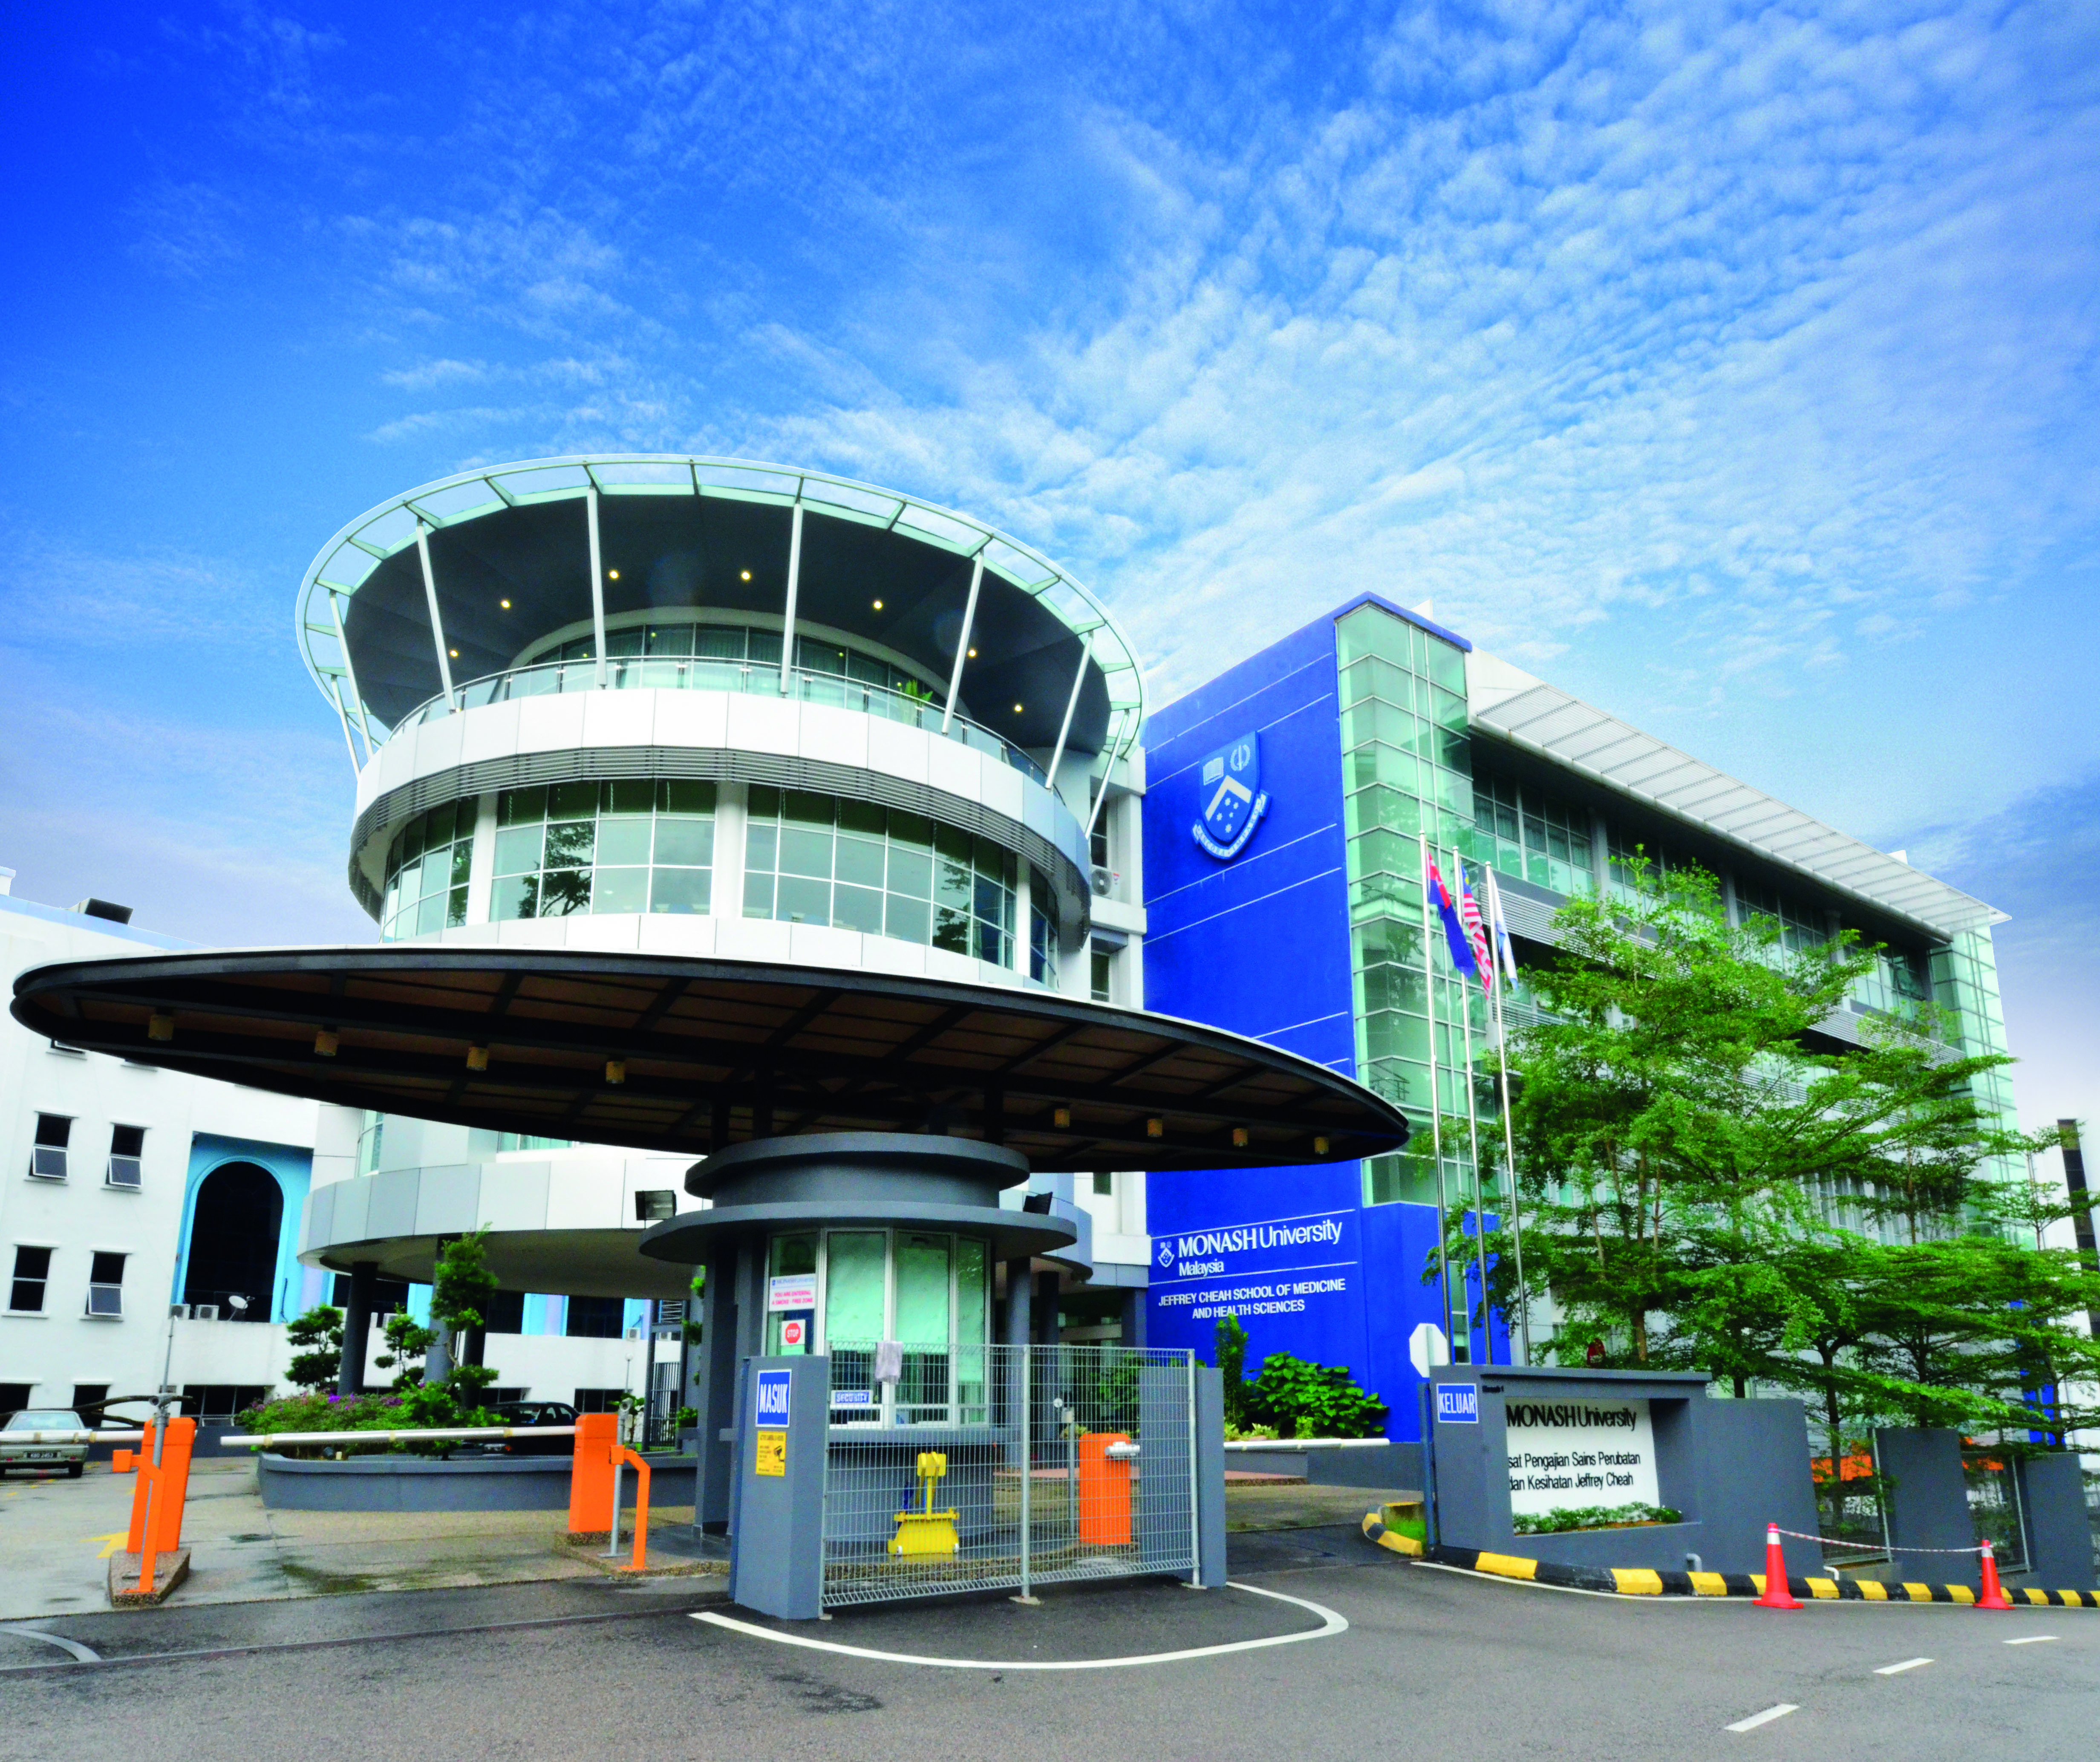 Malaysia University: A Short But Unique Experience